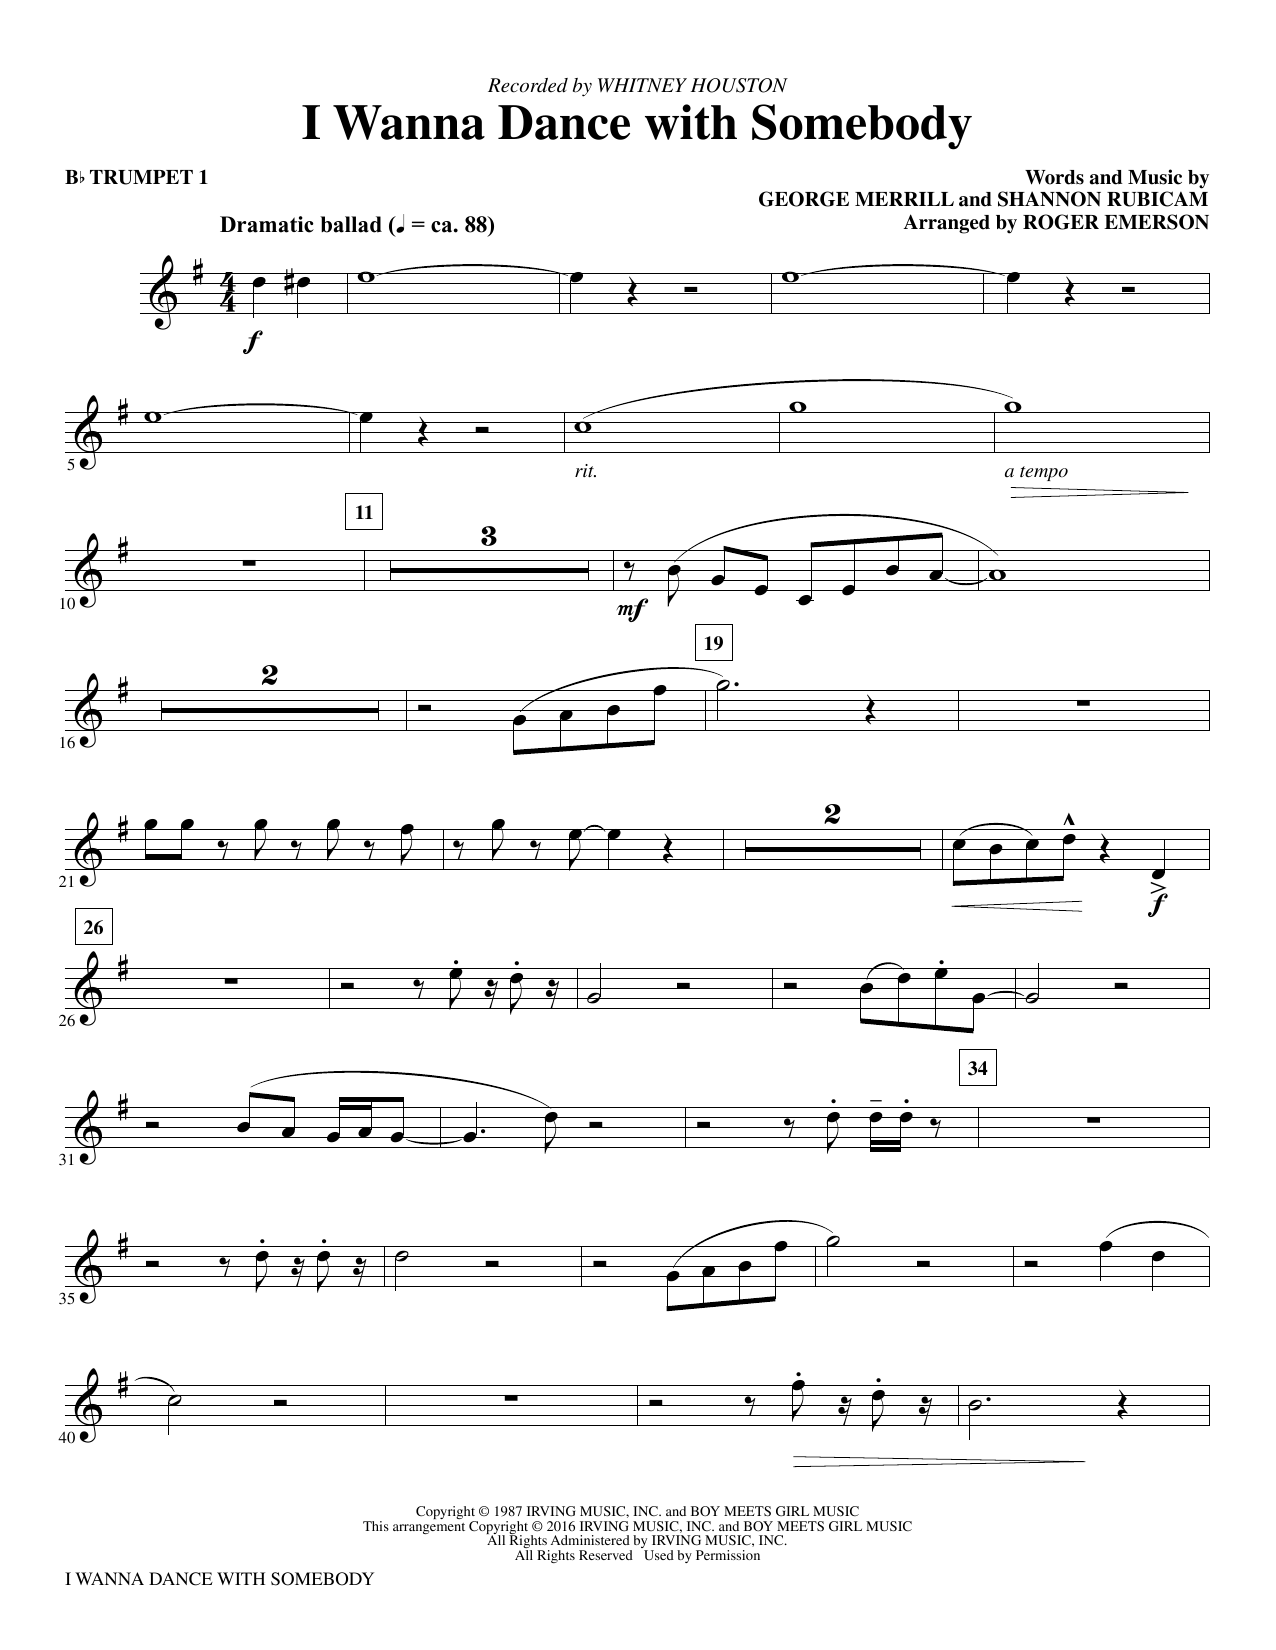 I Wanna Dance With Somebody (complete set of parts) sheet music for orchestra/band by Whitney Houston, George Merrill, Roger Emerson and Shannon Rubicam. Score Image Preview.